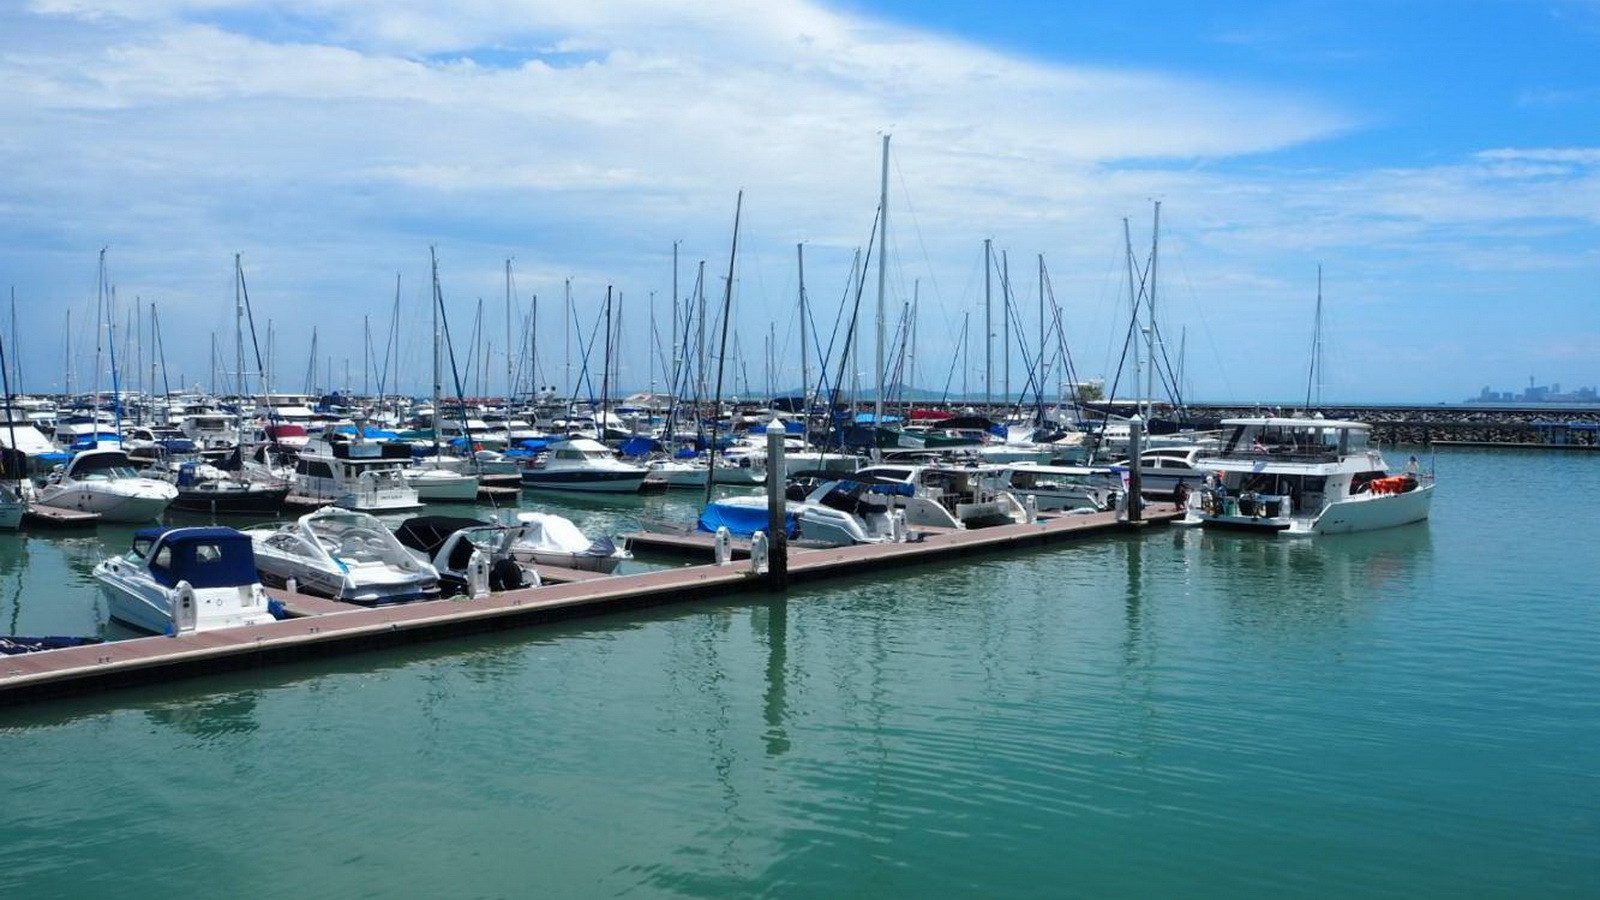 Thai interest in yachting reaches high tide